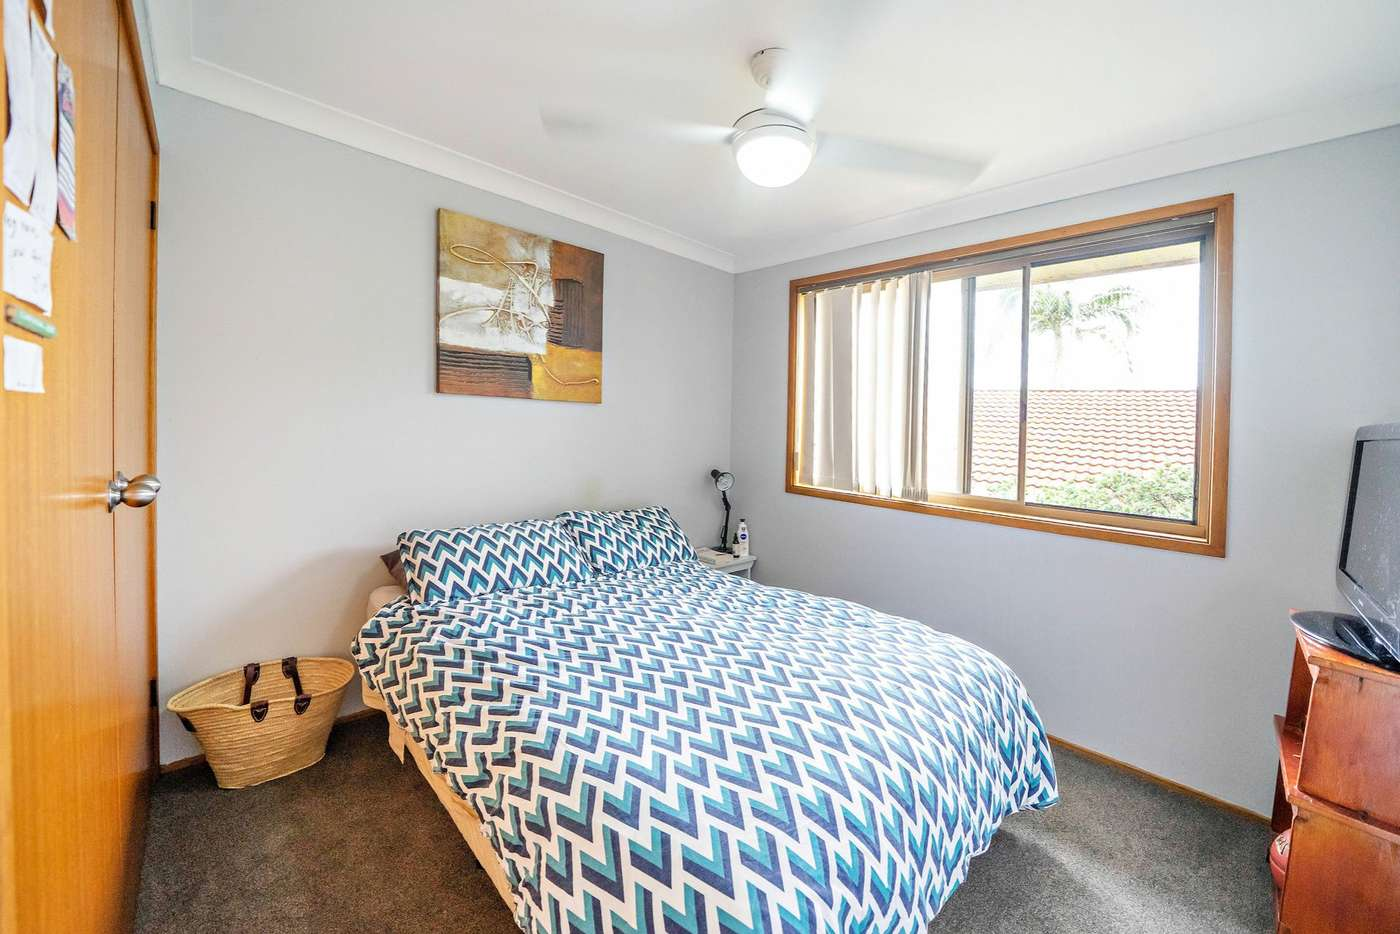 Sixth view of Homely house listing, 7 Talawong Drive, Taree NSW 2430